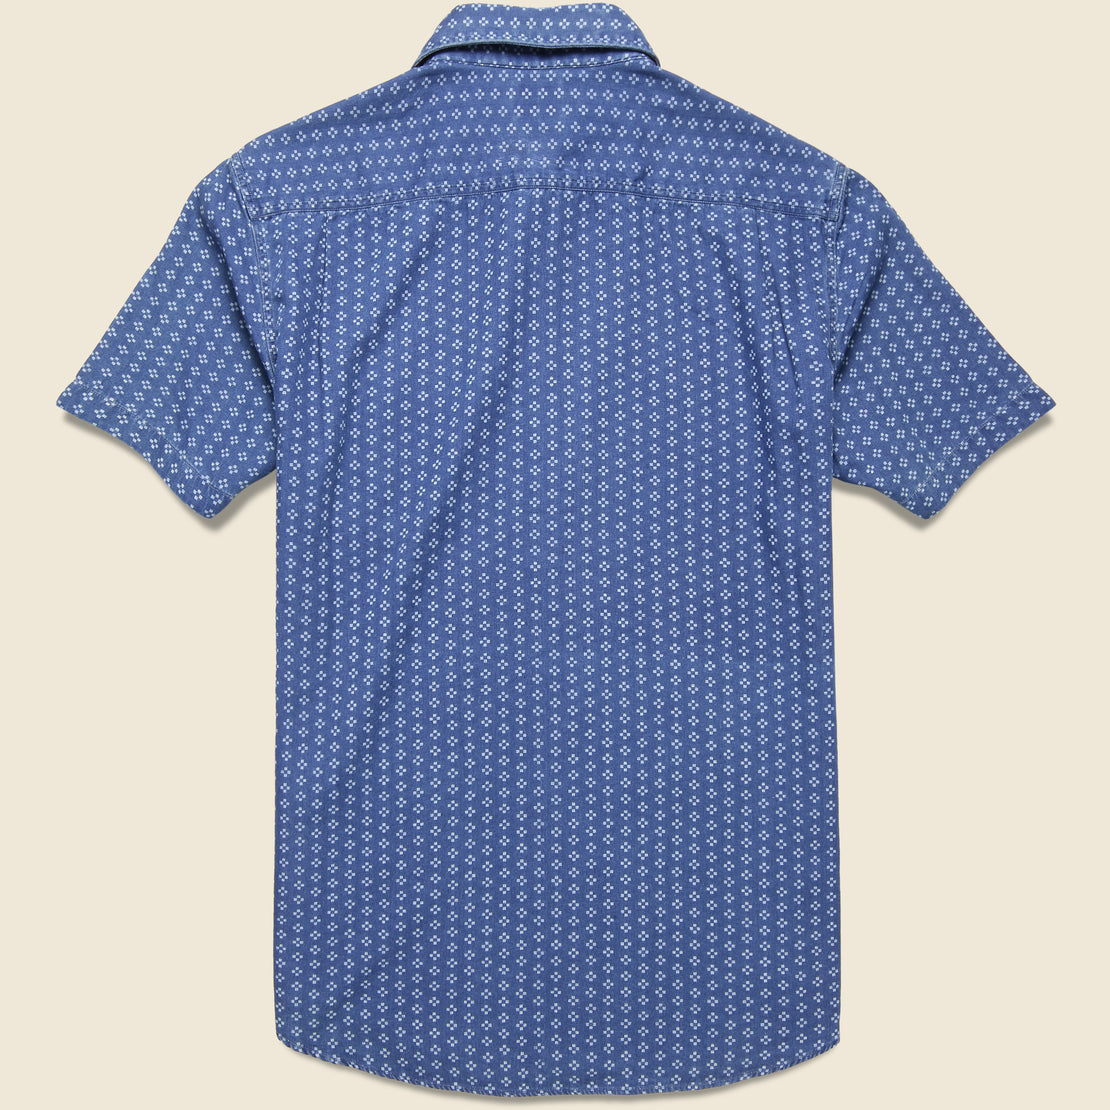 Playa Shirt - Eco Indigo Geo